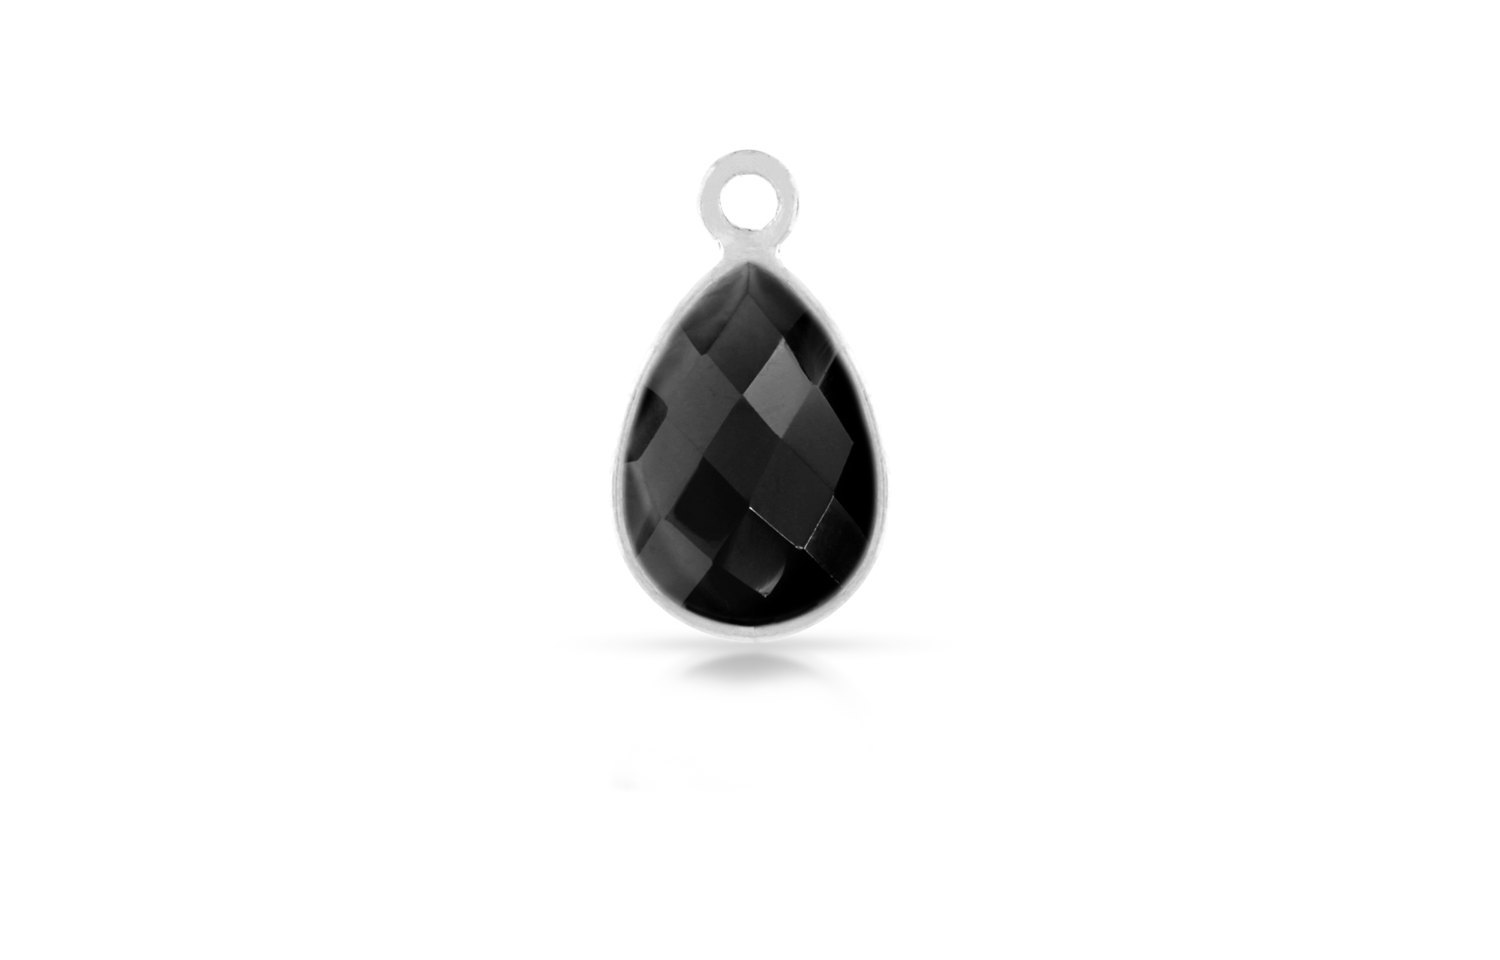 Primary image for Drop, Faceted Black Onyx, Pear Shape, Sterling Silver, 14x10mm, 1pc (6230)/1